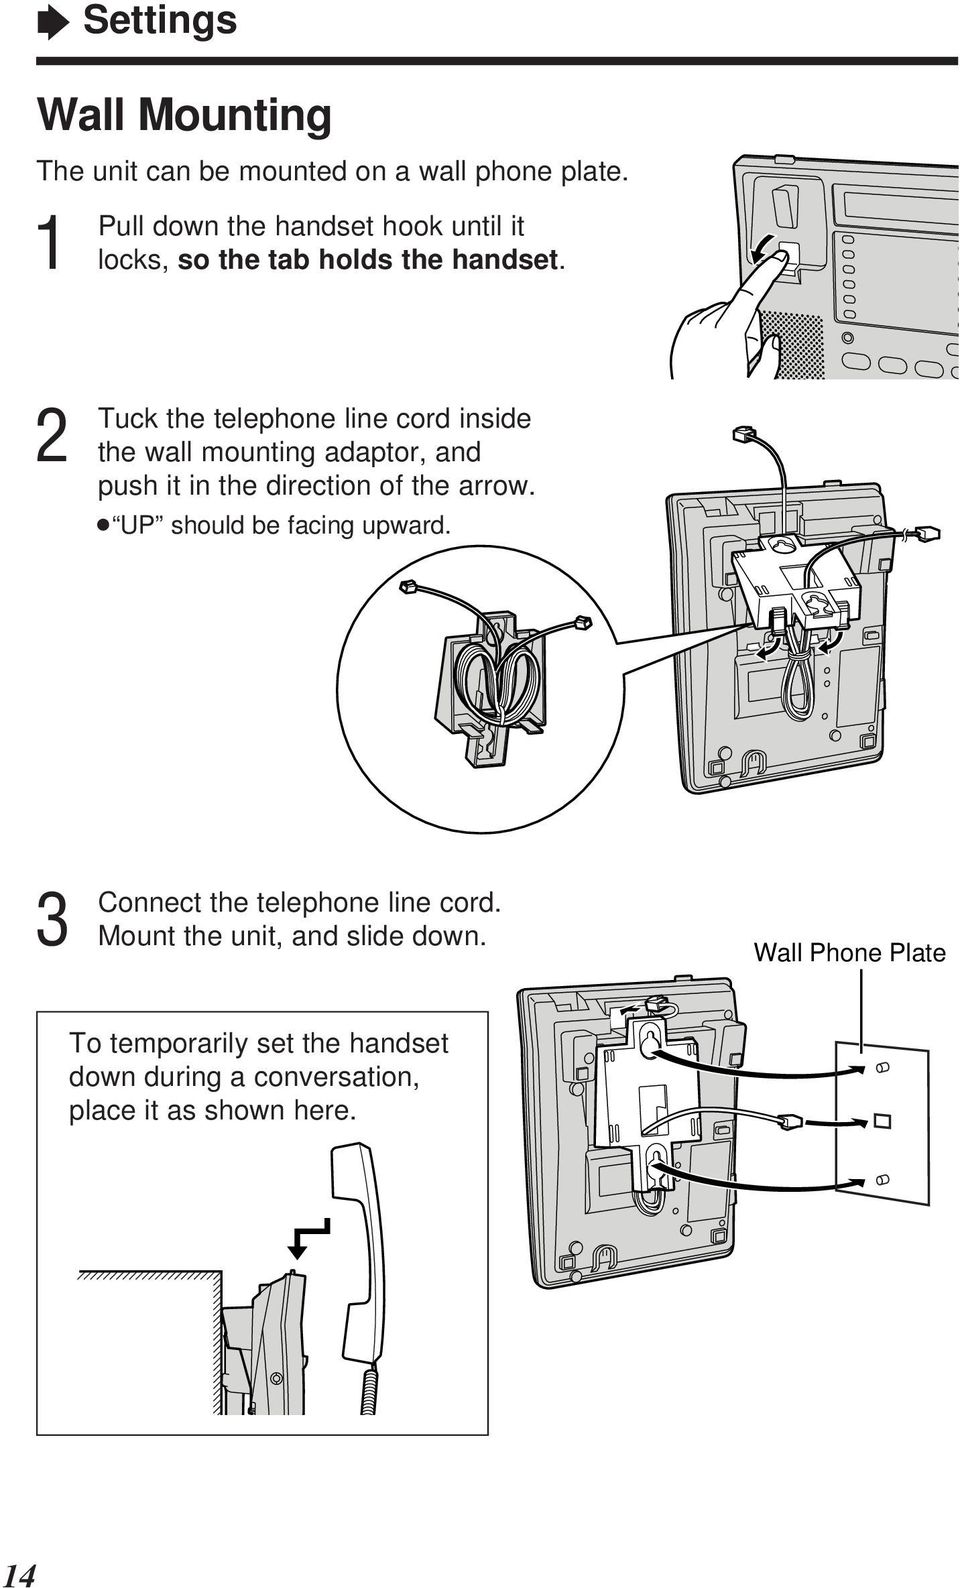 Tuck the telephone line cord inside the wall mounting adaptor, and push it in the direction of the arrow.